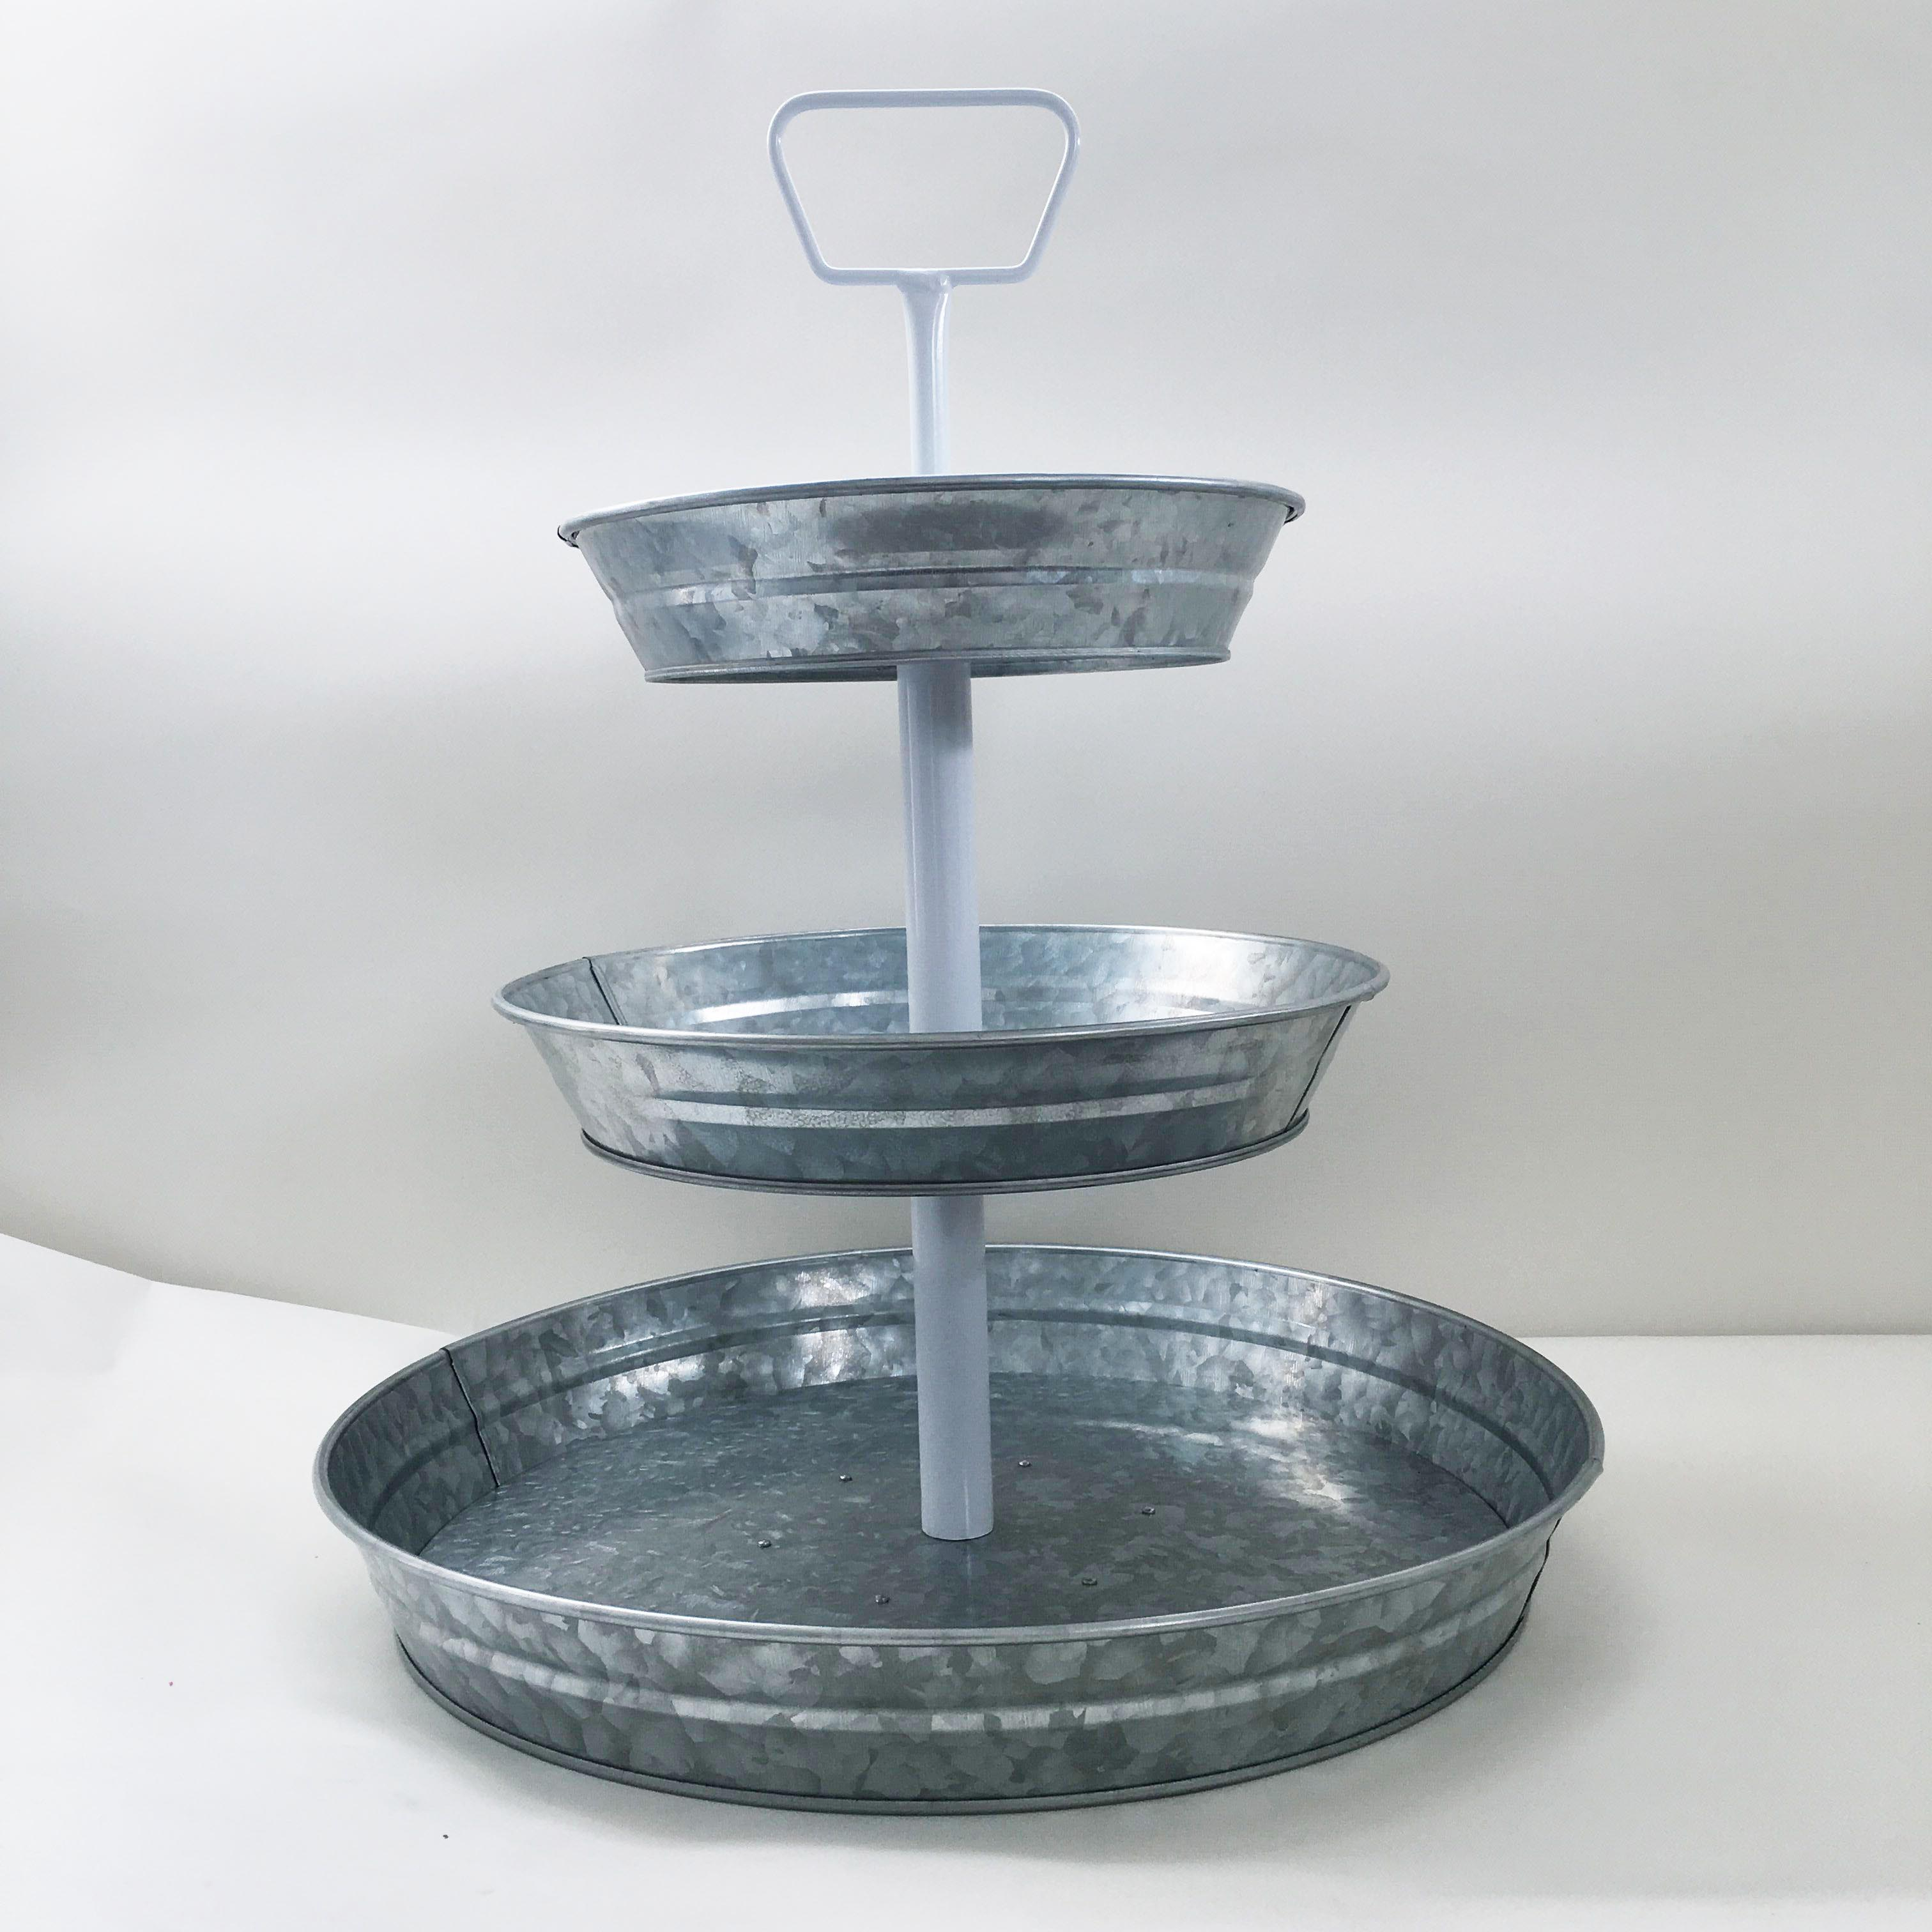 3 Tier Galvanized Round Serving Trays with White Handle